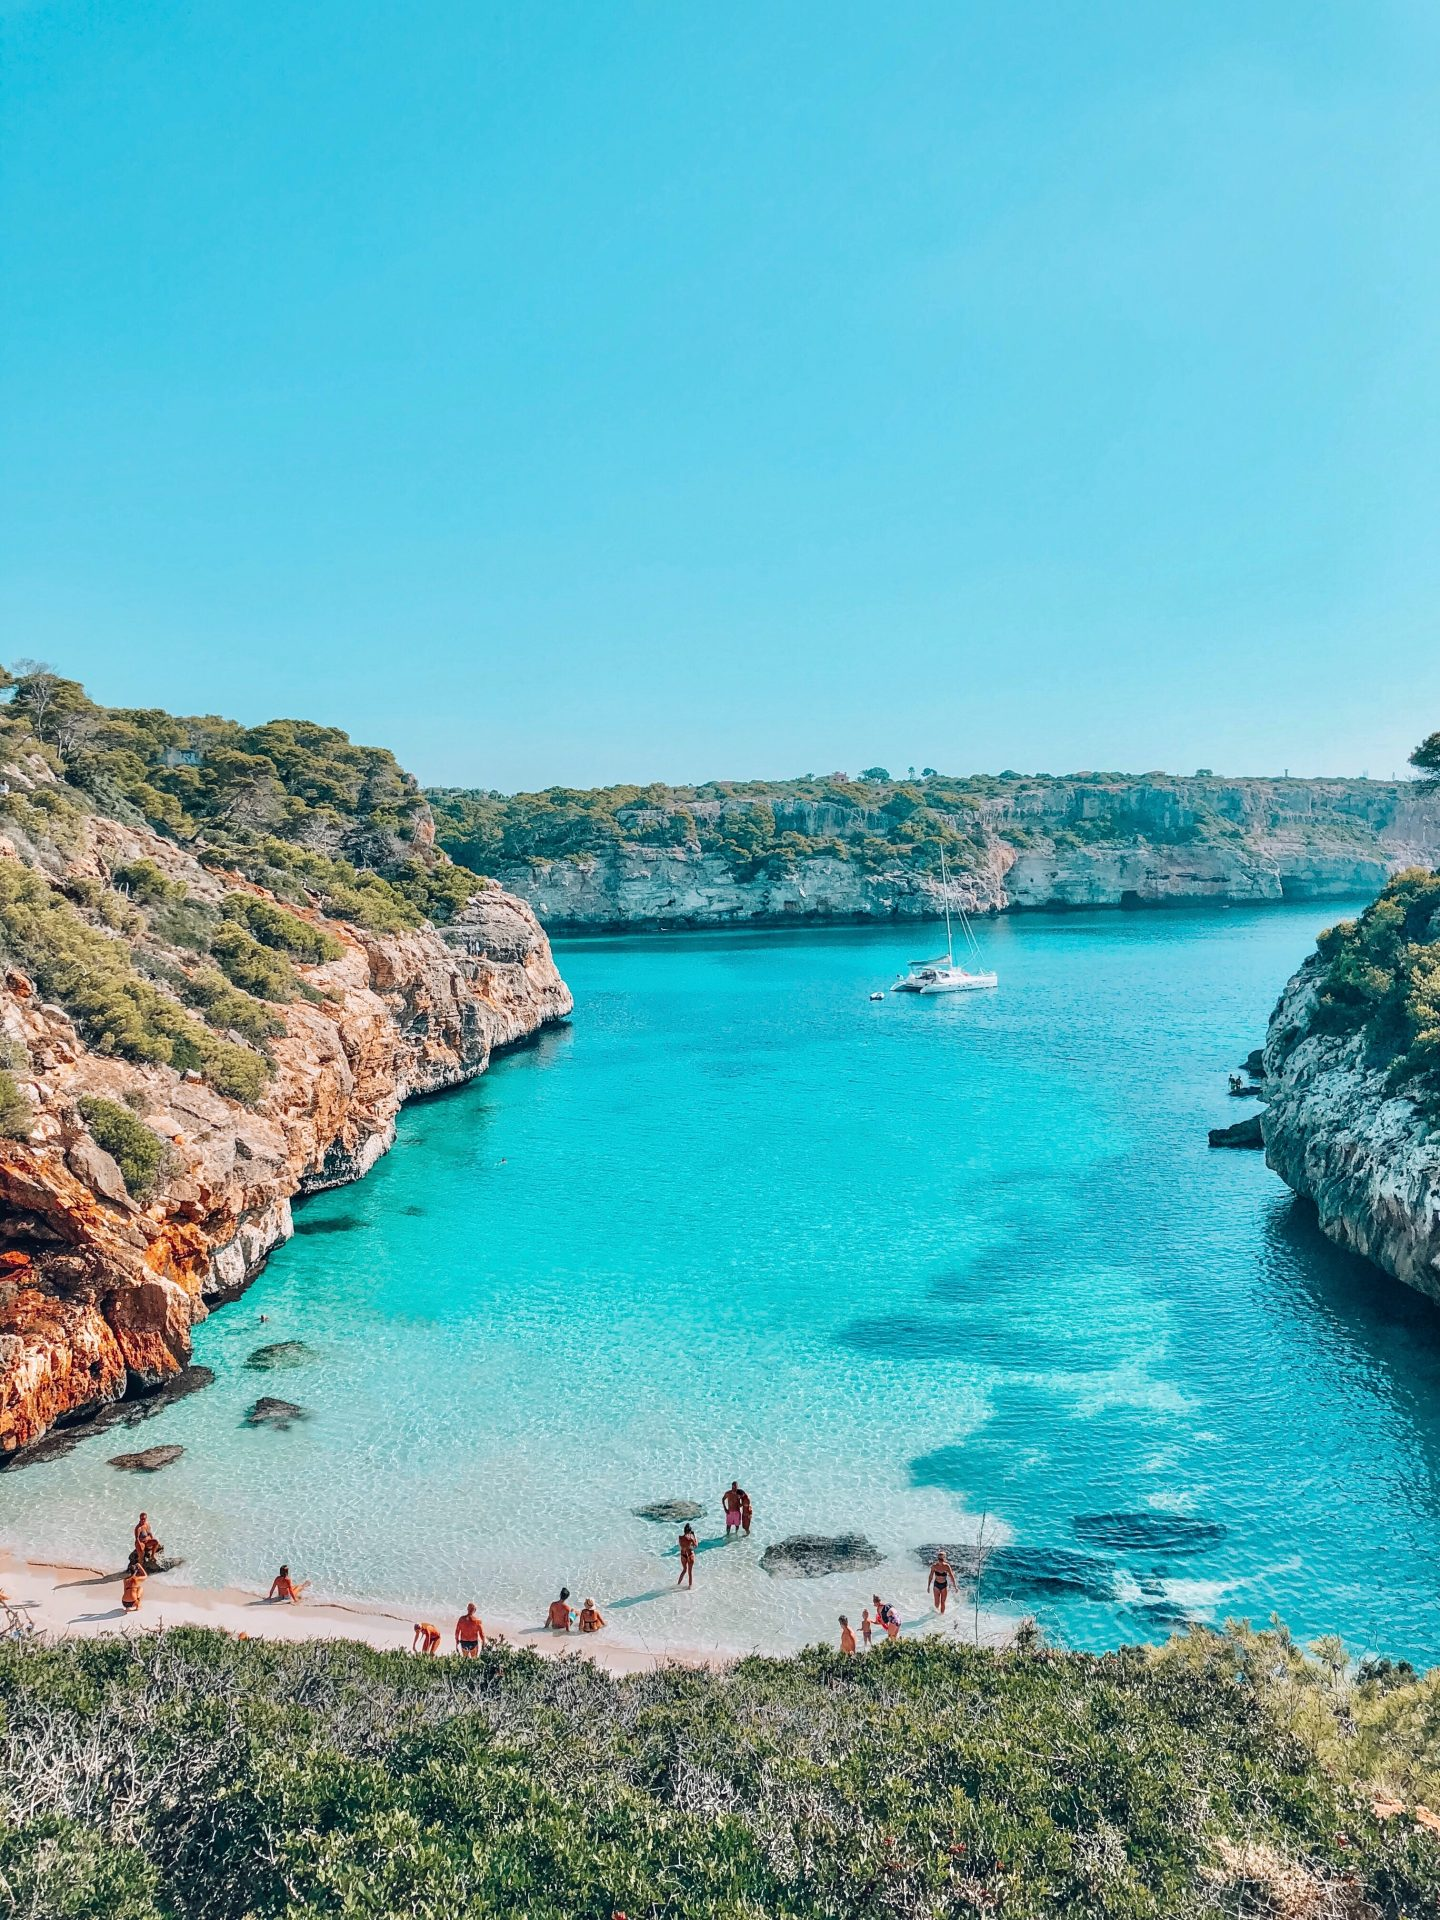 Top 3 beaches in Mallorca and where to find them